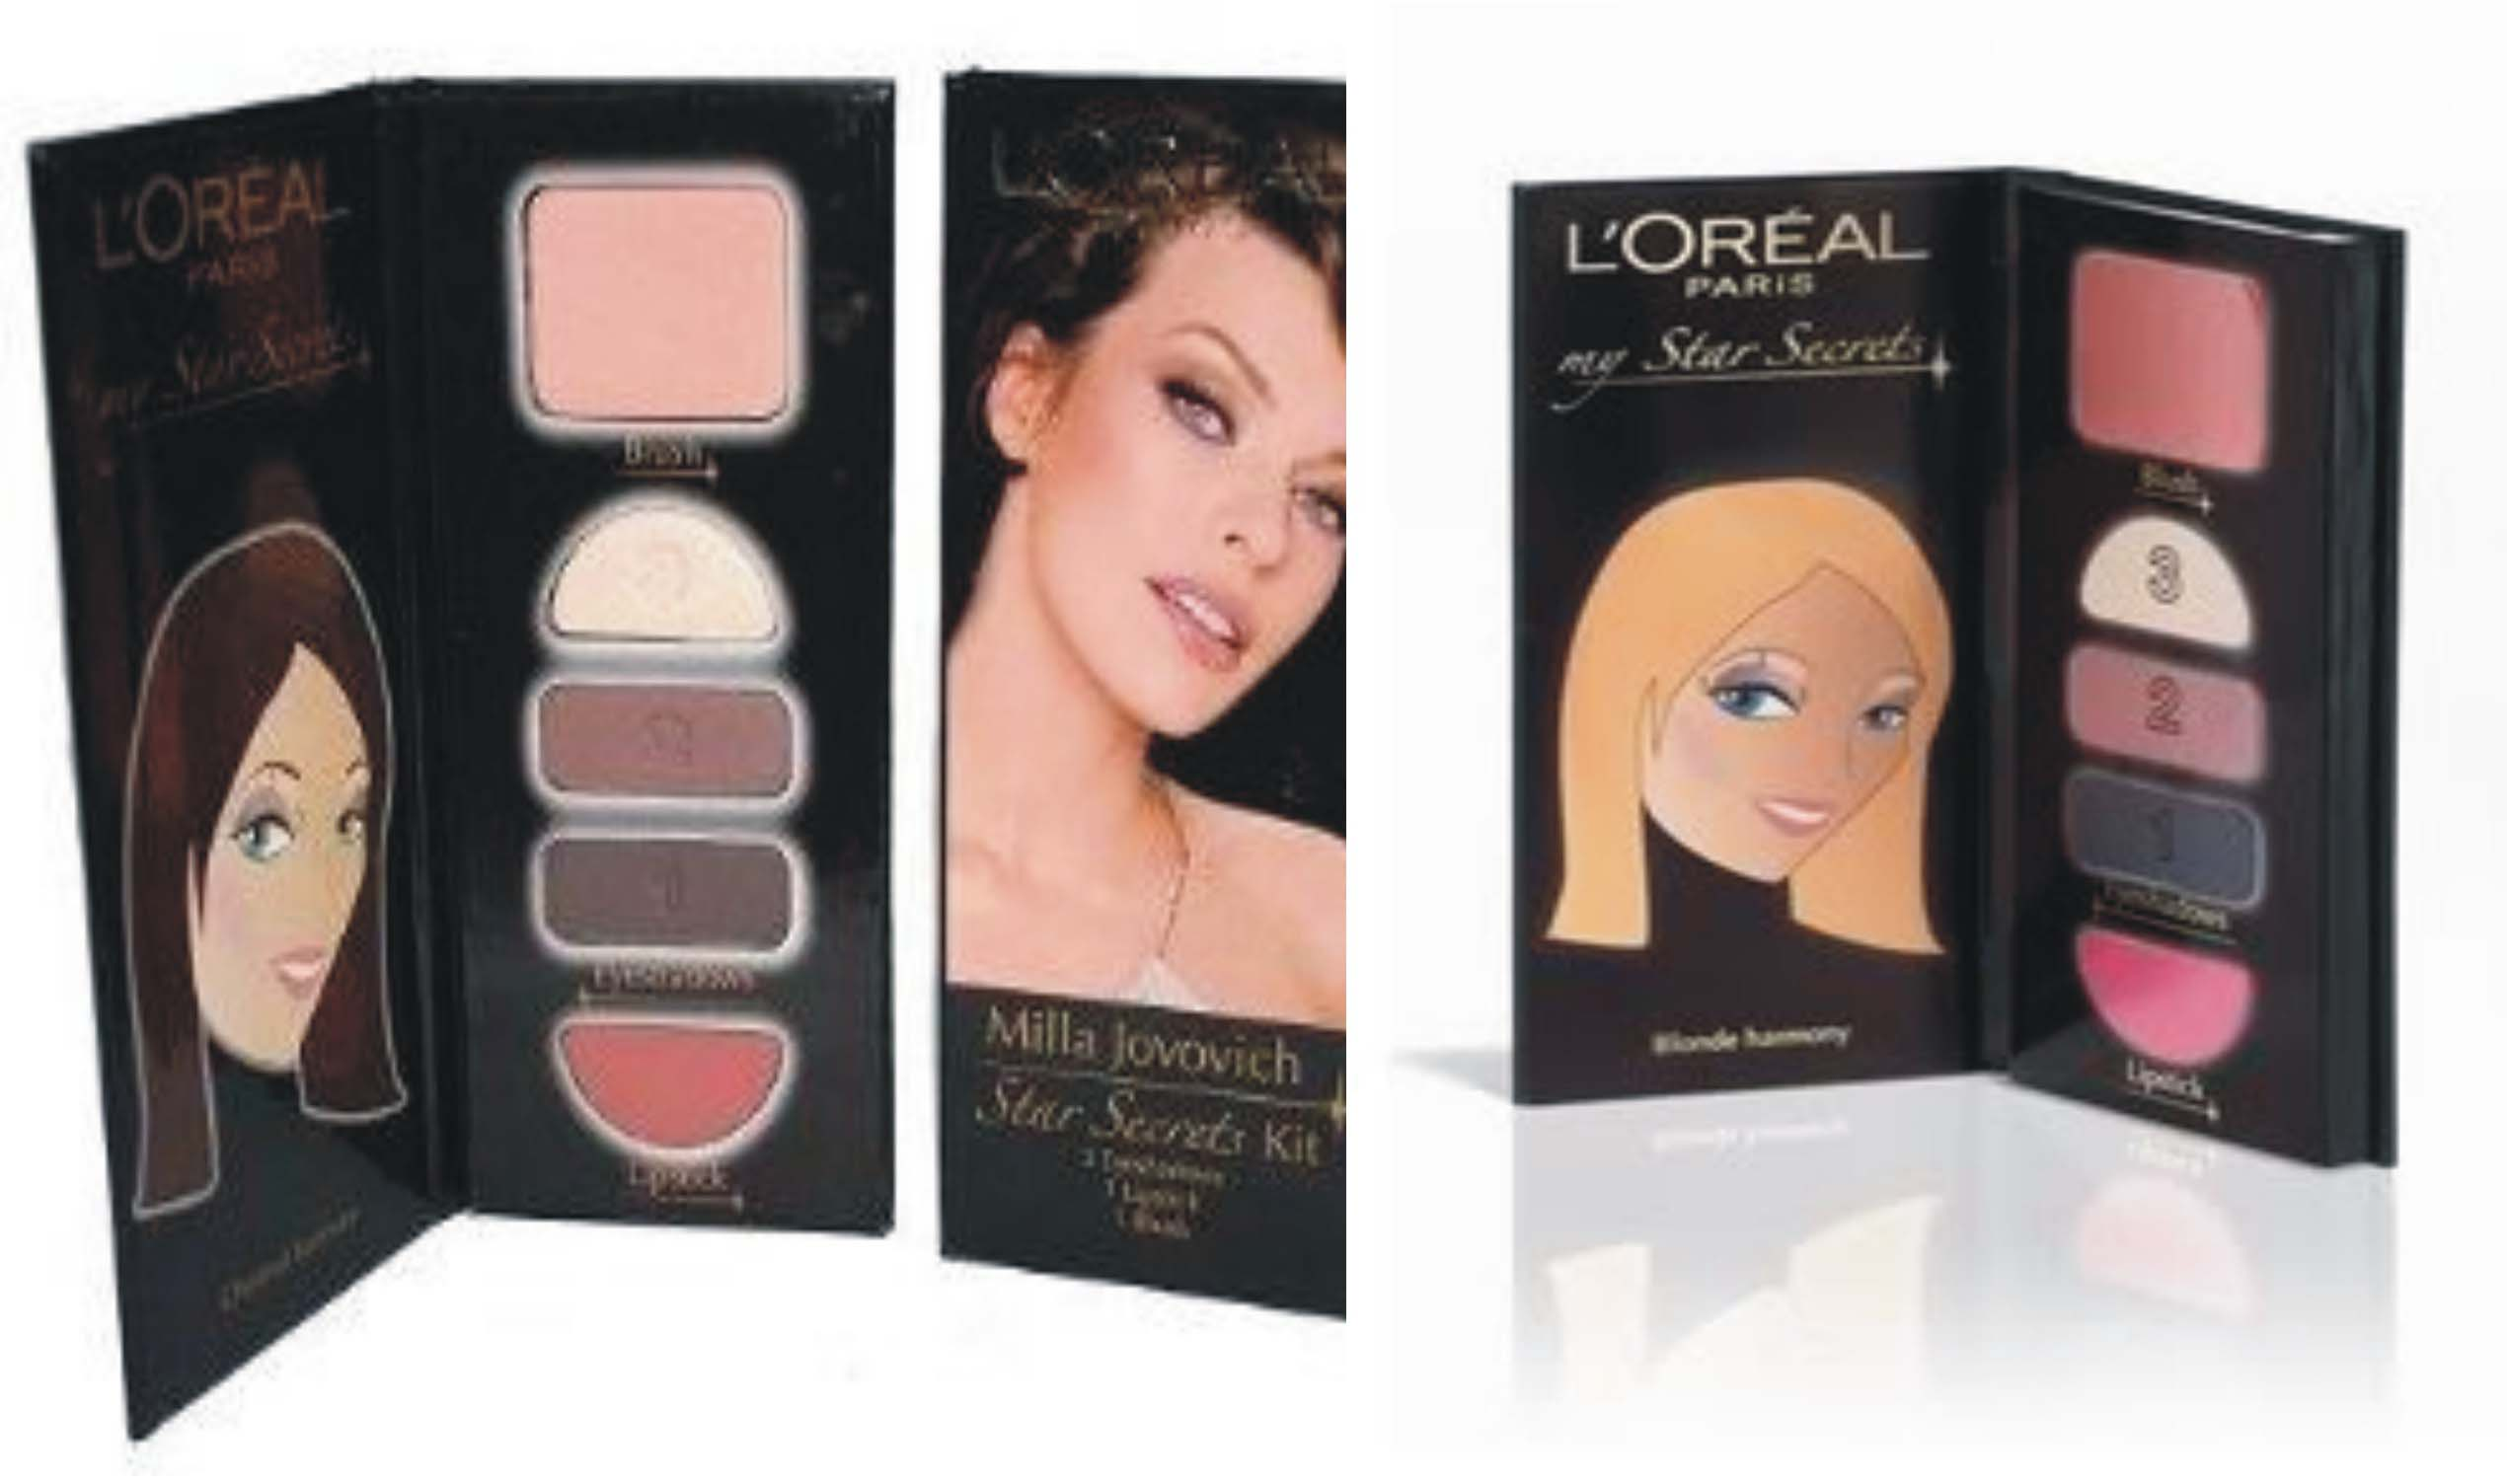 L'Oreal paris makeup kit for ladies